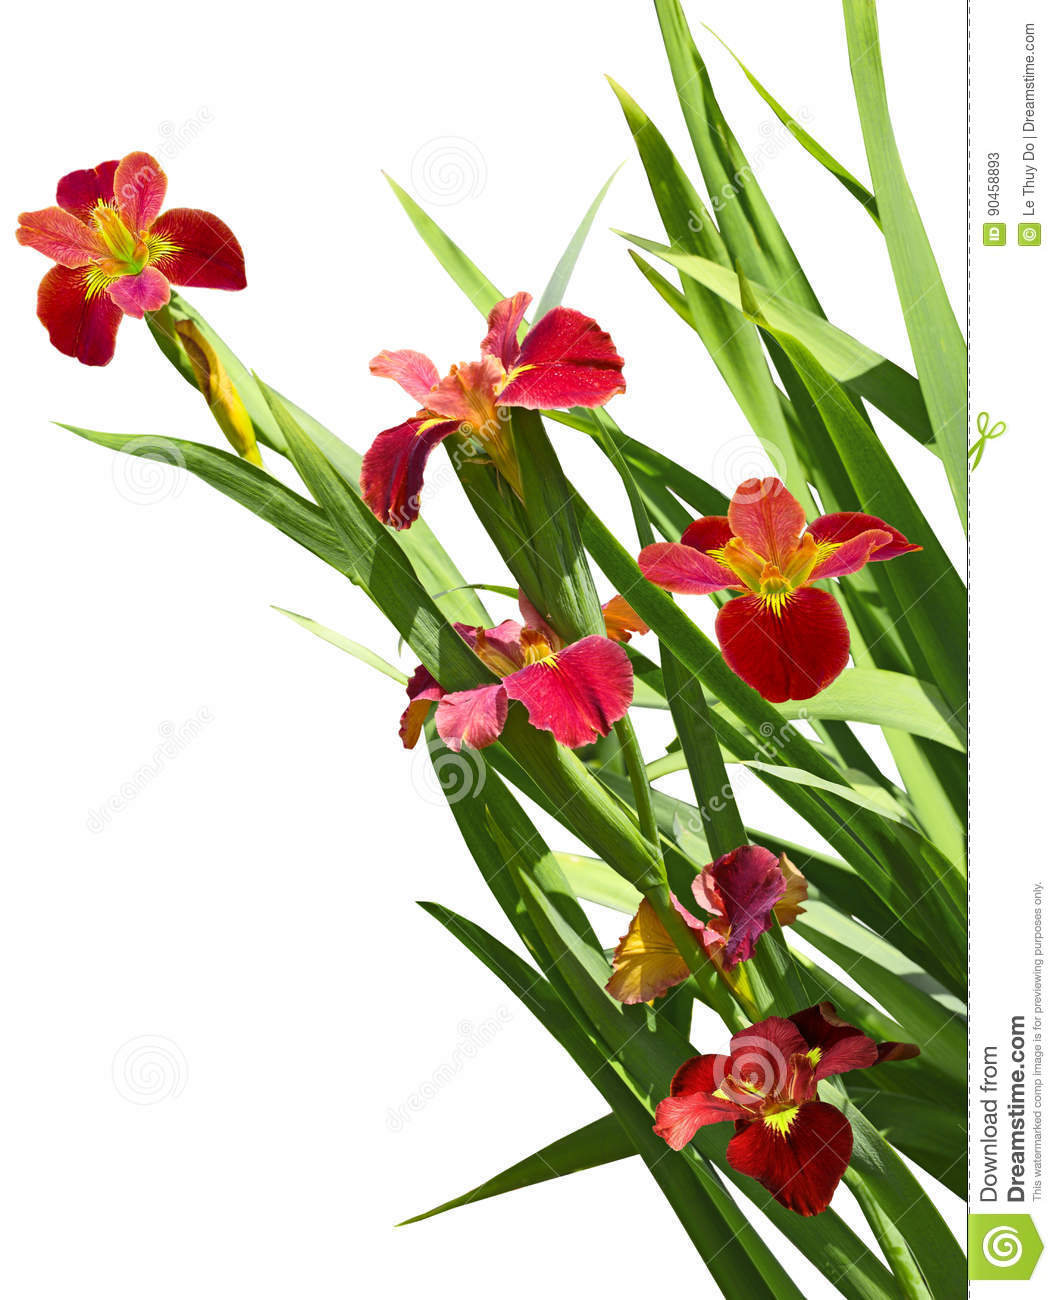 Red Iris Flower Stock Image Image Of Bright Spring 90458893